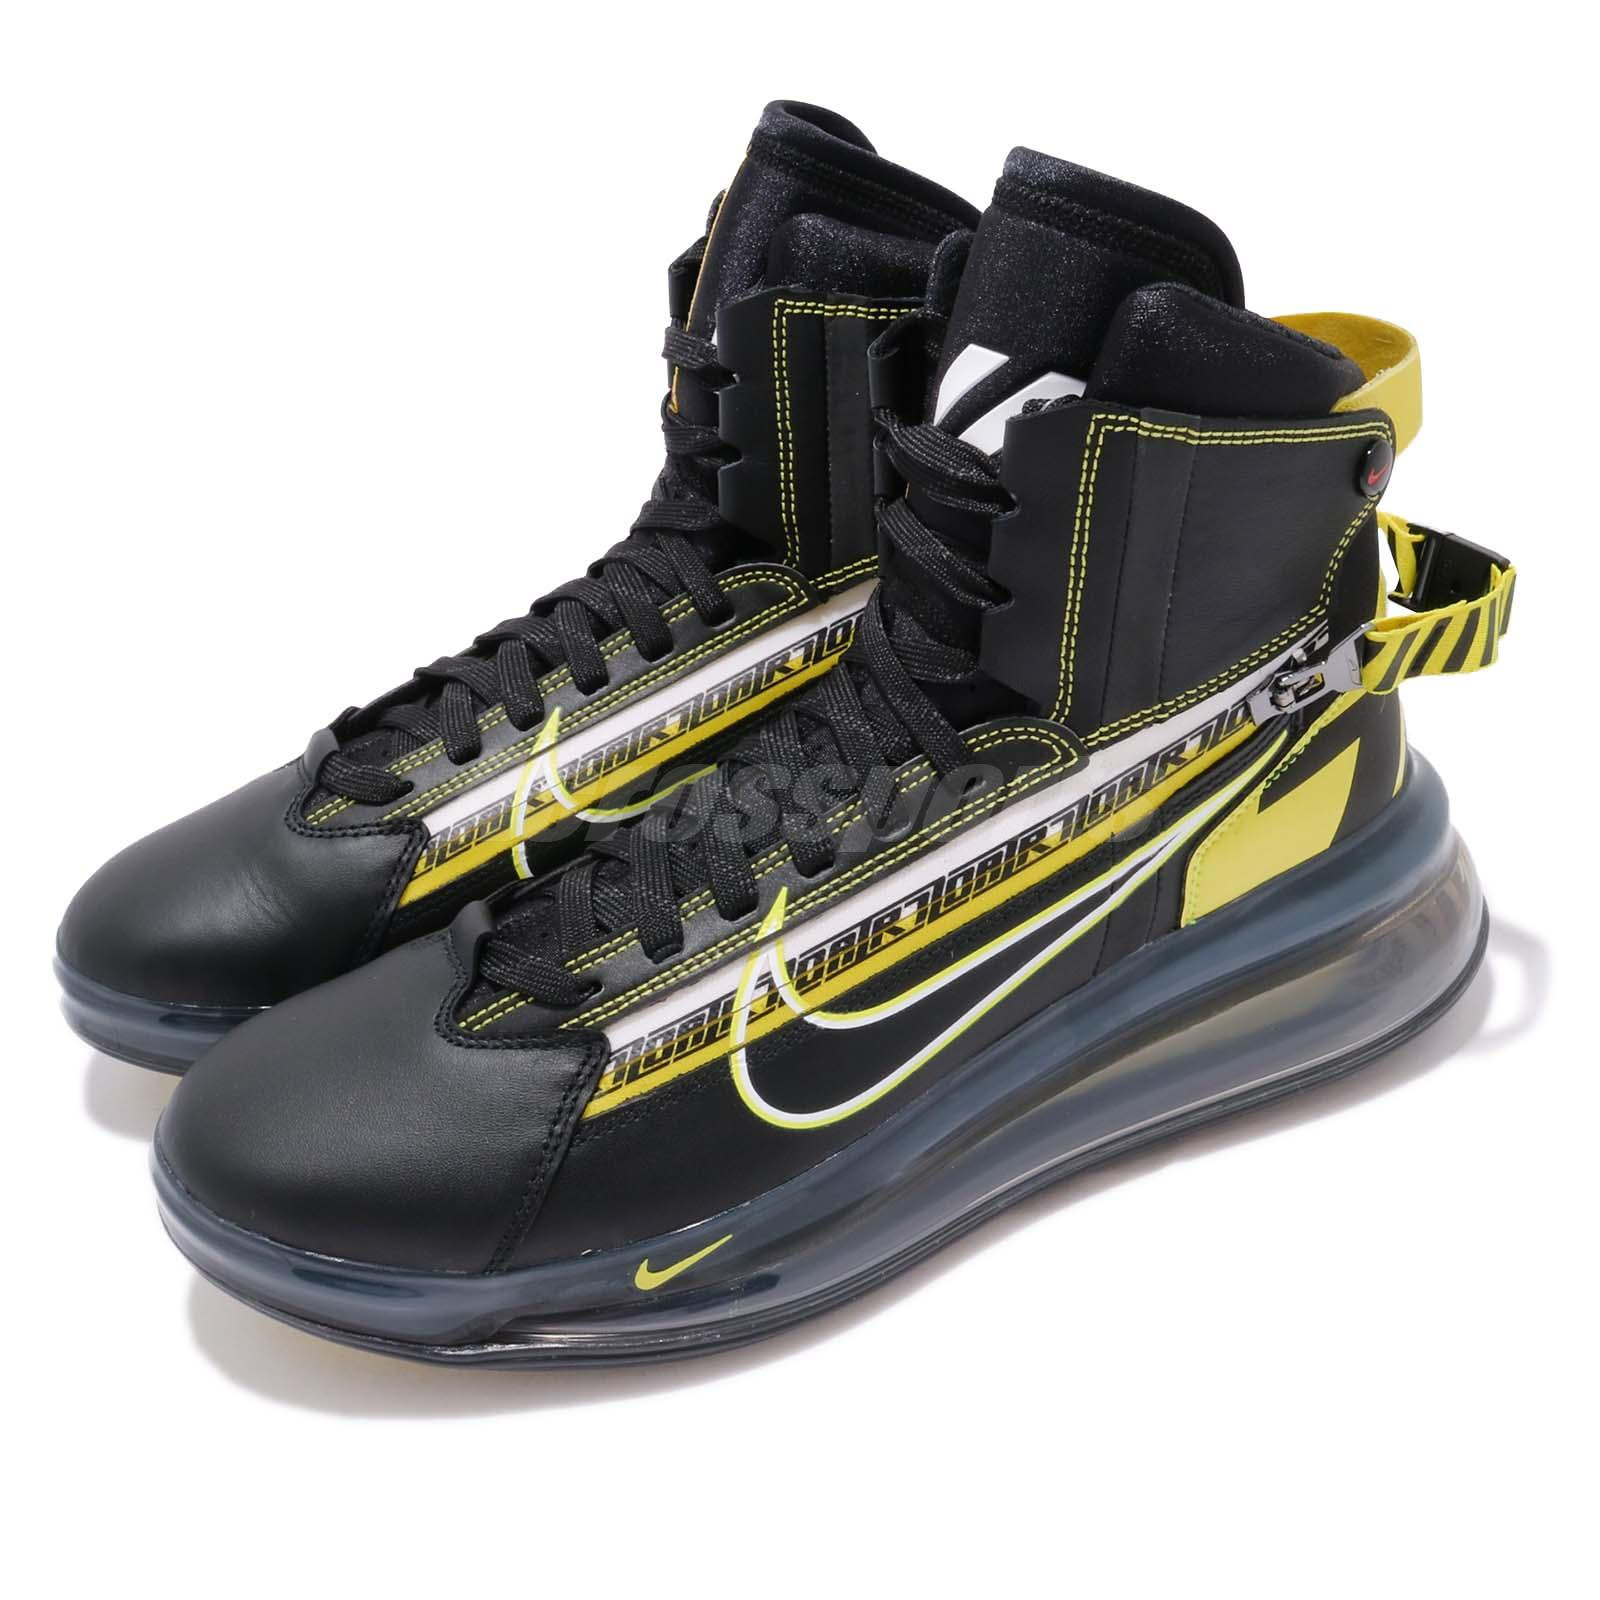 Details about Nike Air Max 720 Saturn AS QS All Star 2019 Motorsport Black Yellow BV7786 001